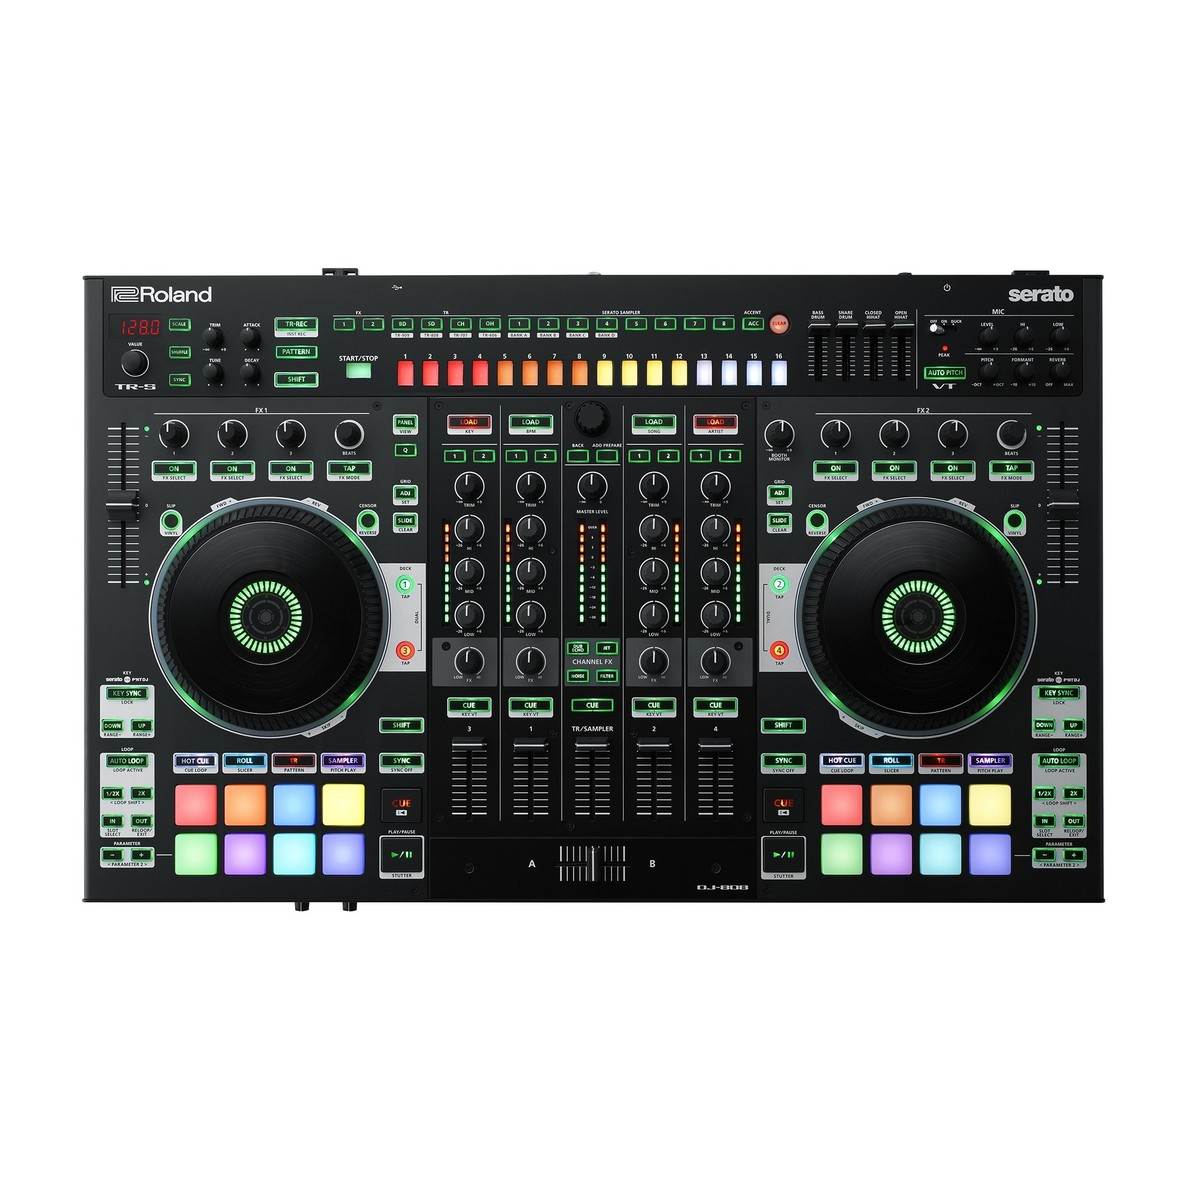 Roland Dj 808 Dj Controller At Gear4music Com